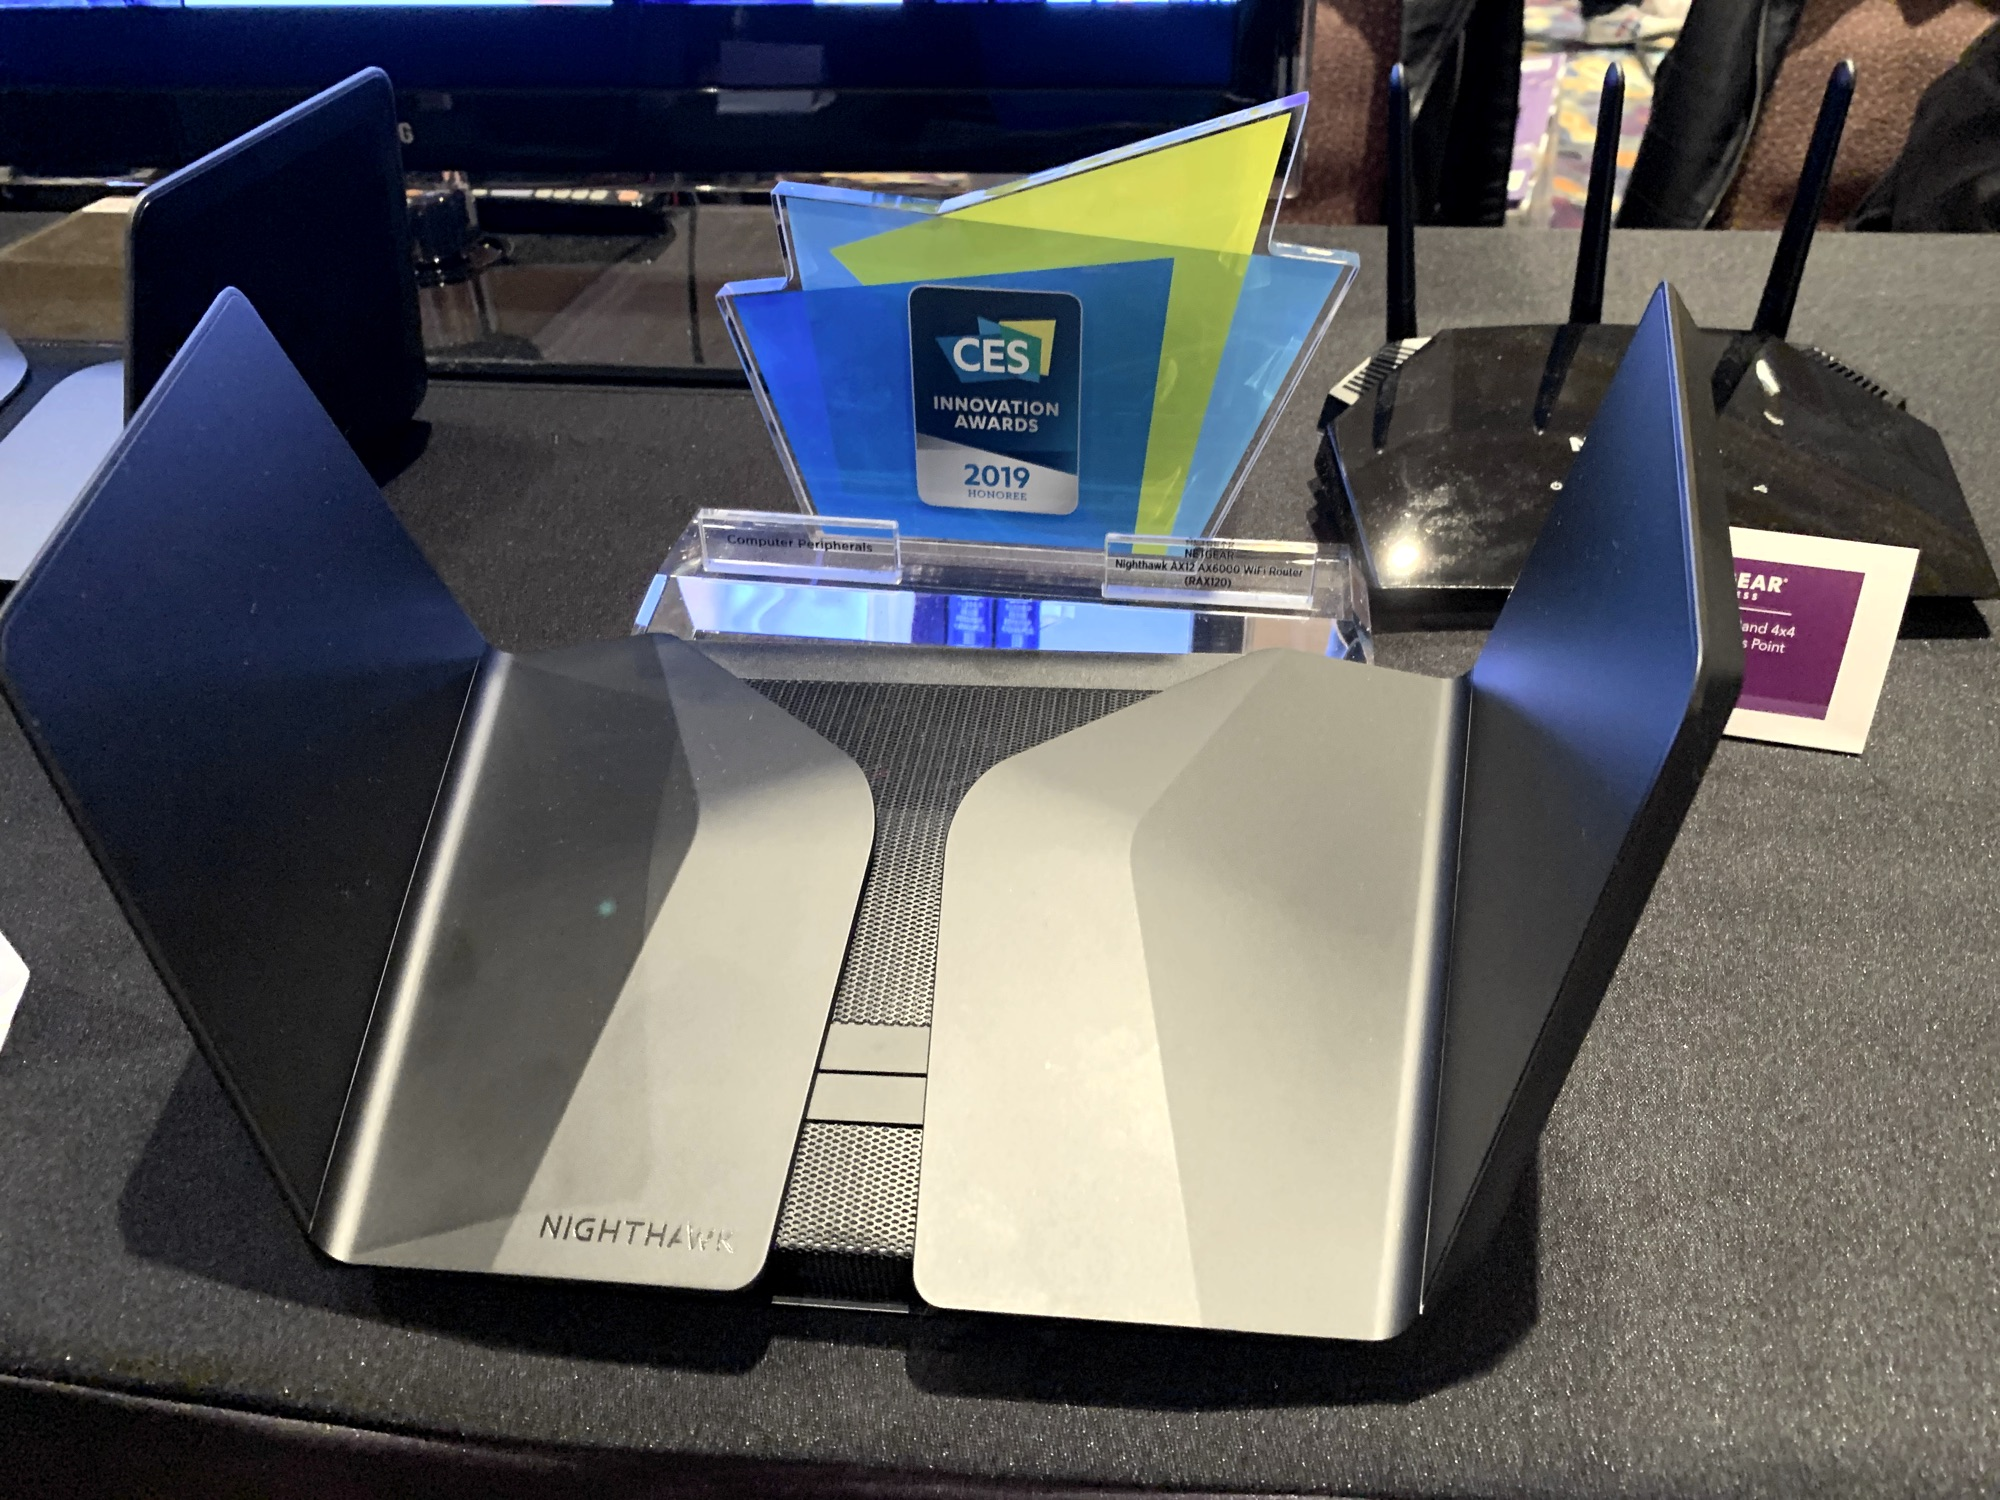 CES – Netgear's Nighthawk AX12 Brings Wi-Fi 6 and Enhancements to Wi-Fi 5